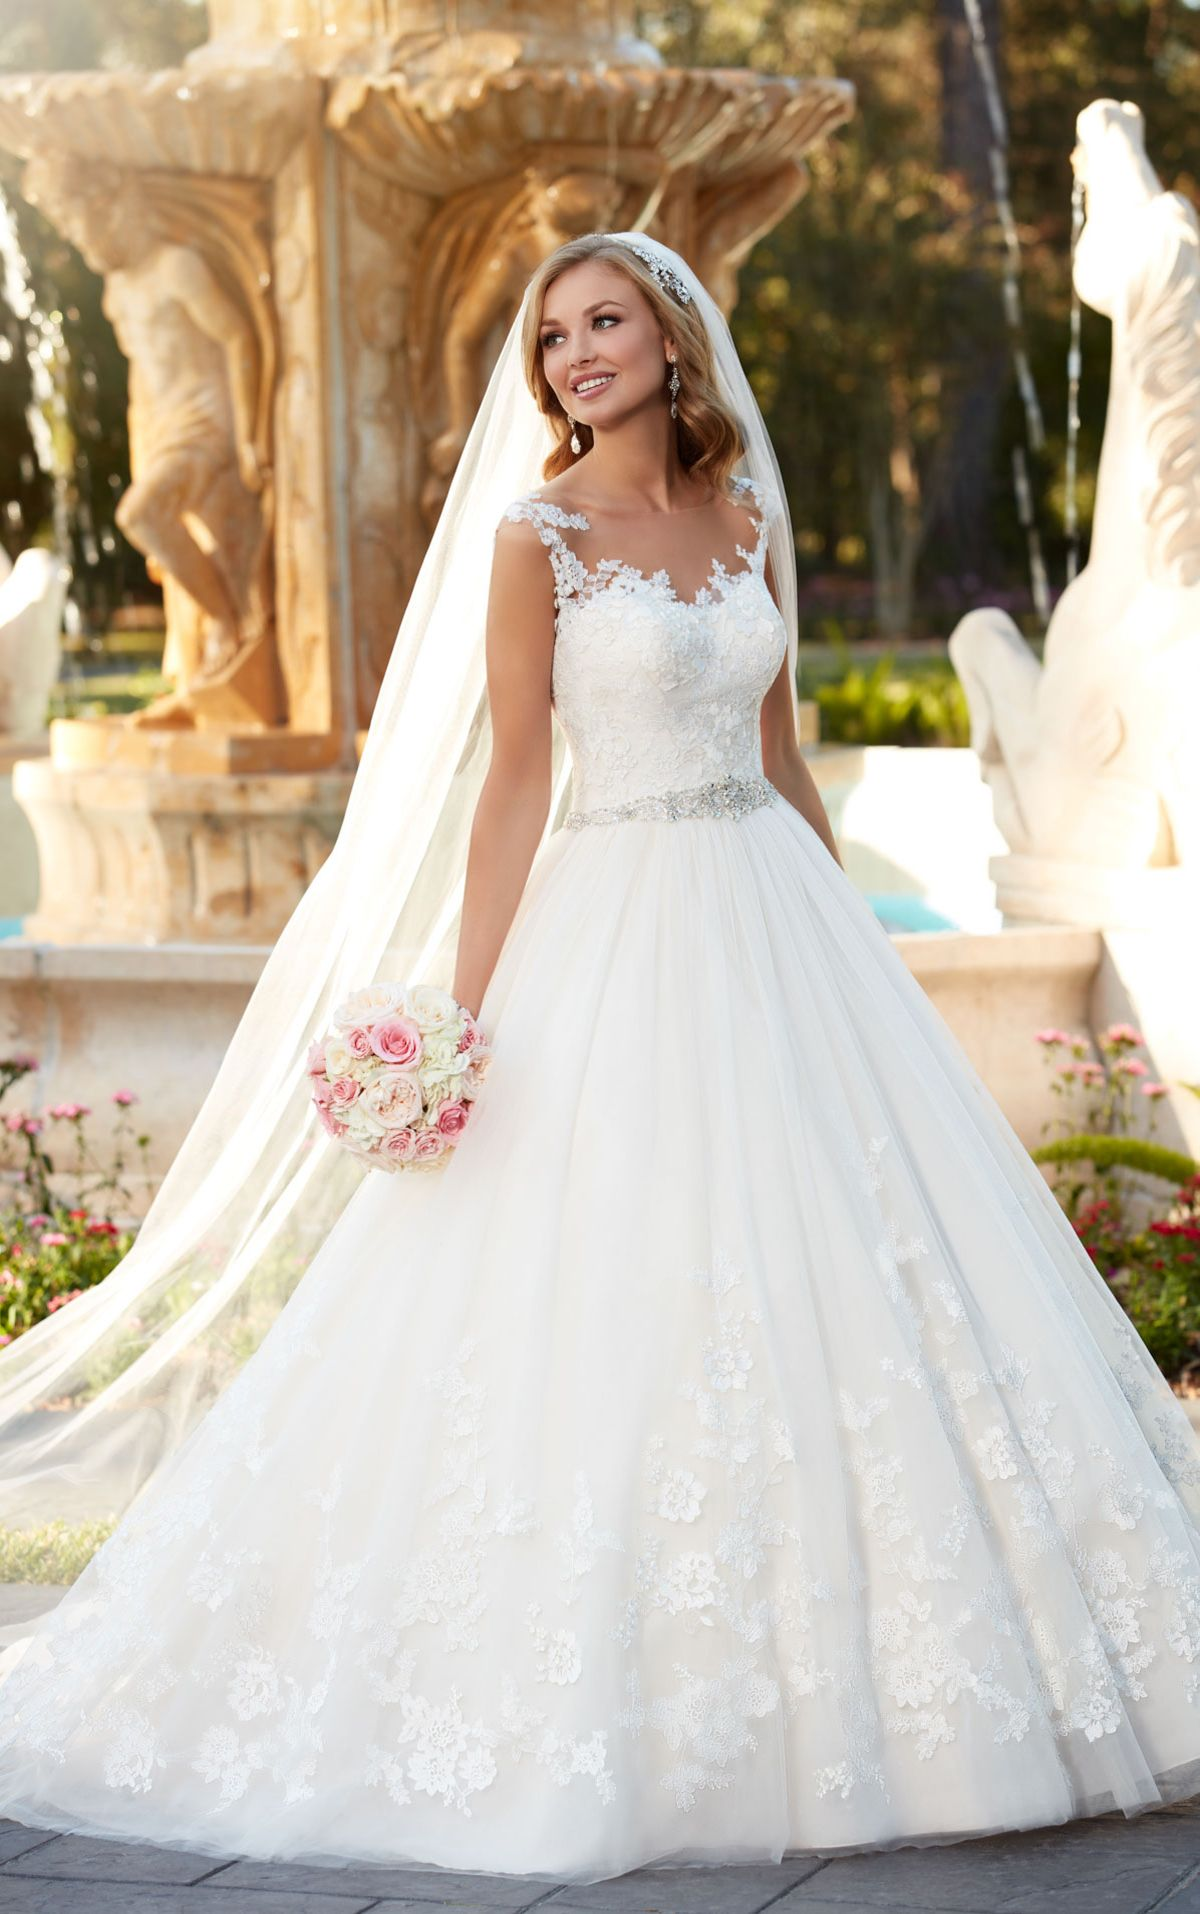 Lace and tulle ball gown wedding dress - Stella York | Pinterest ...